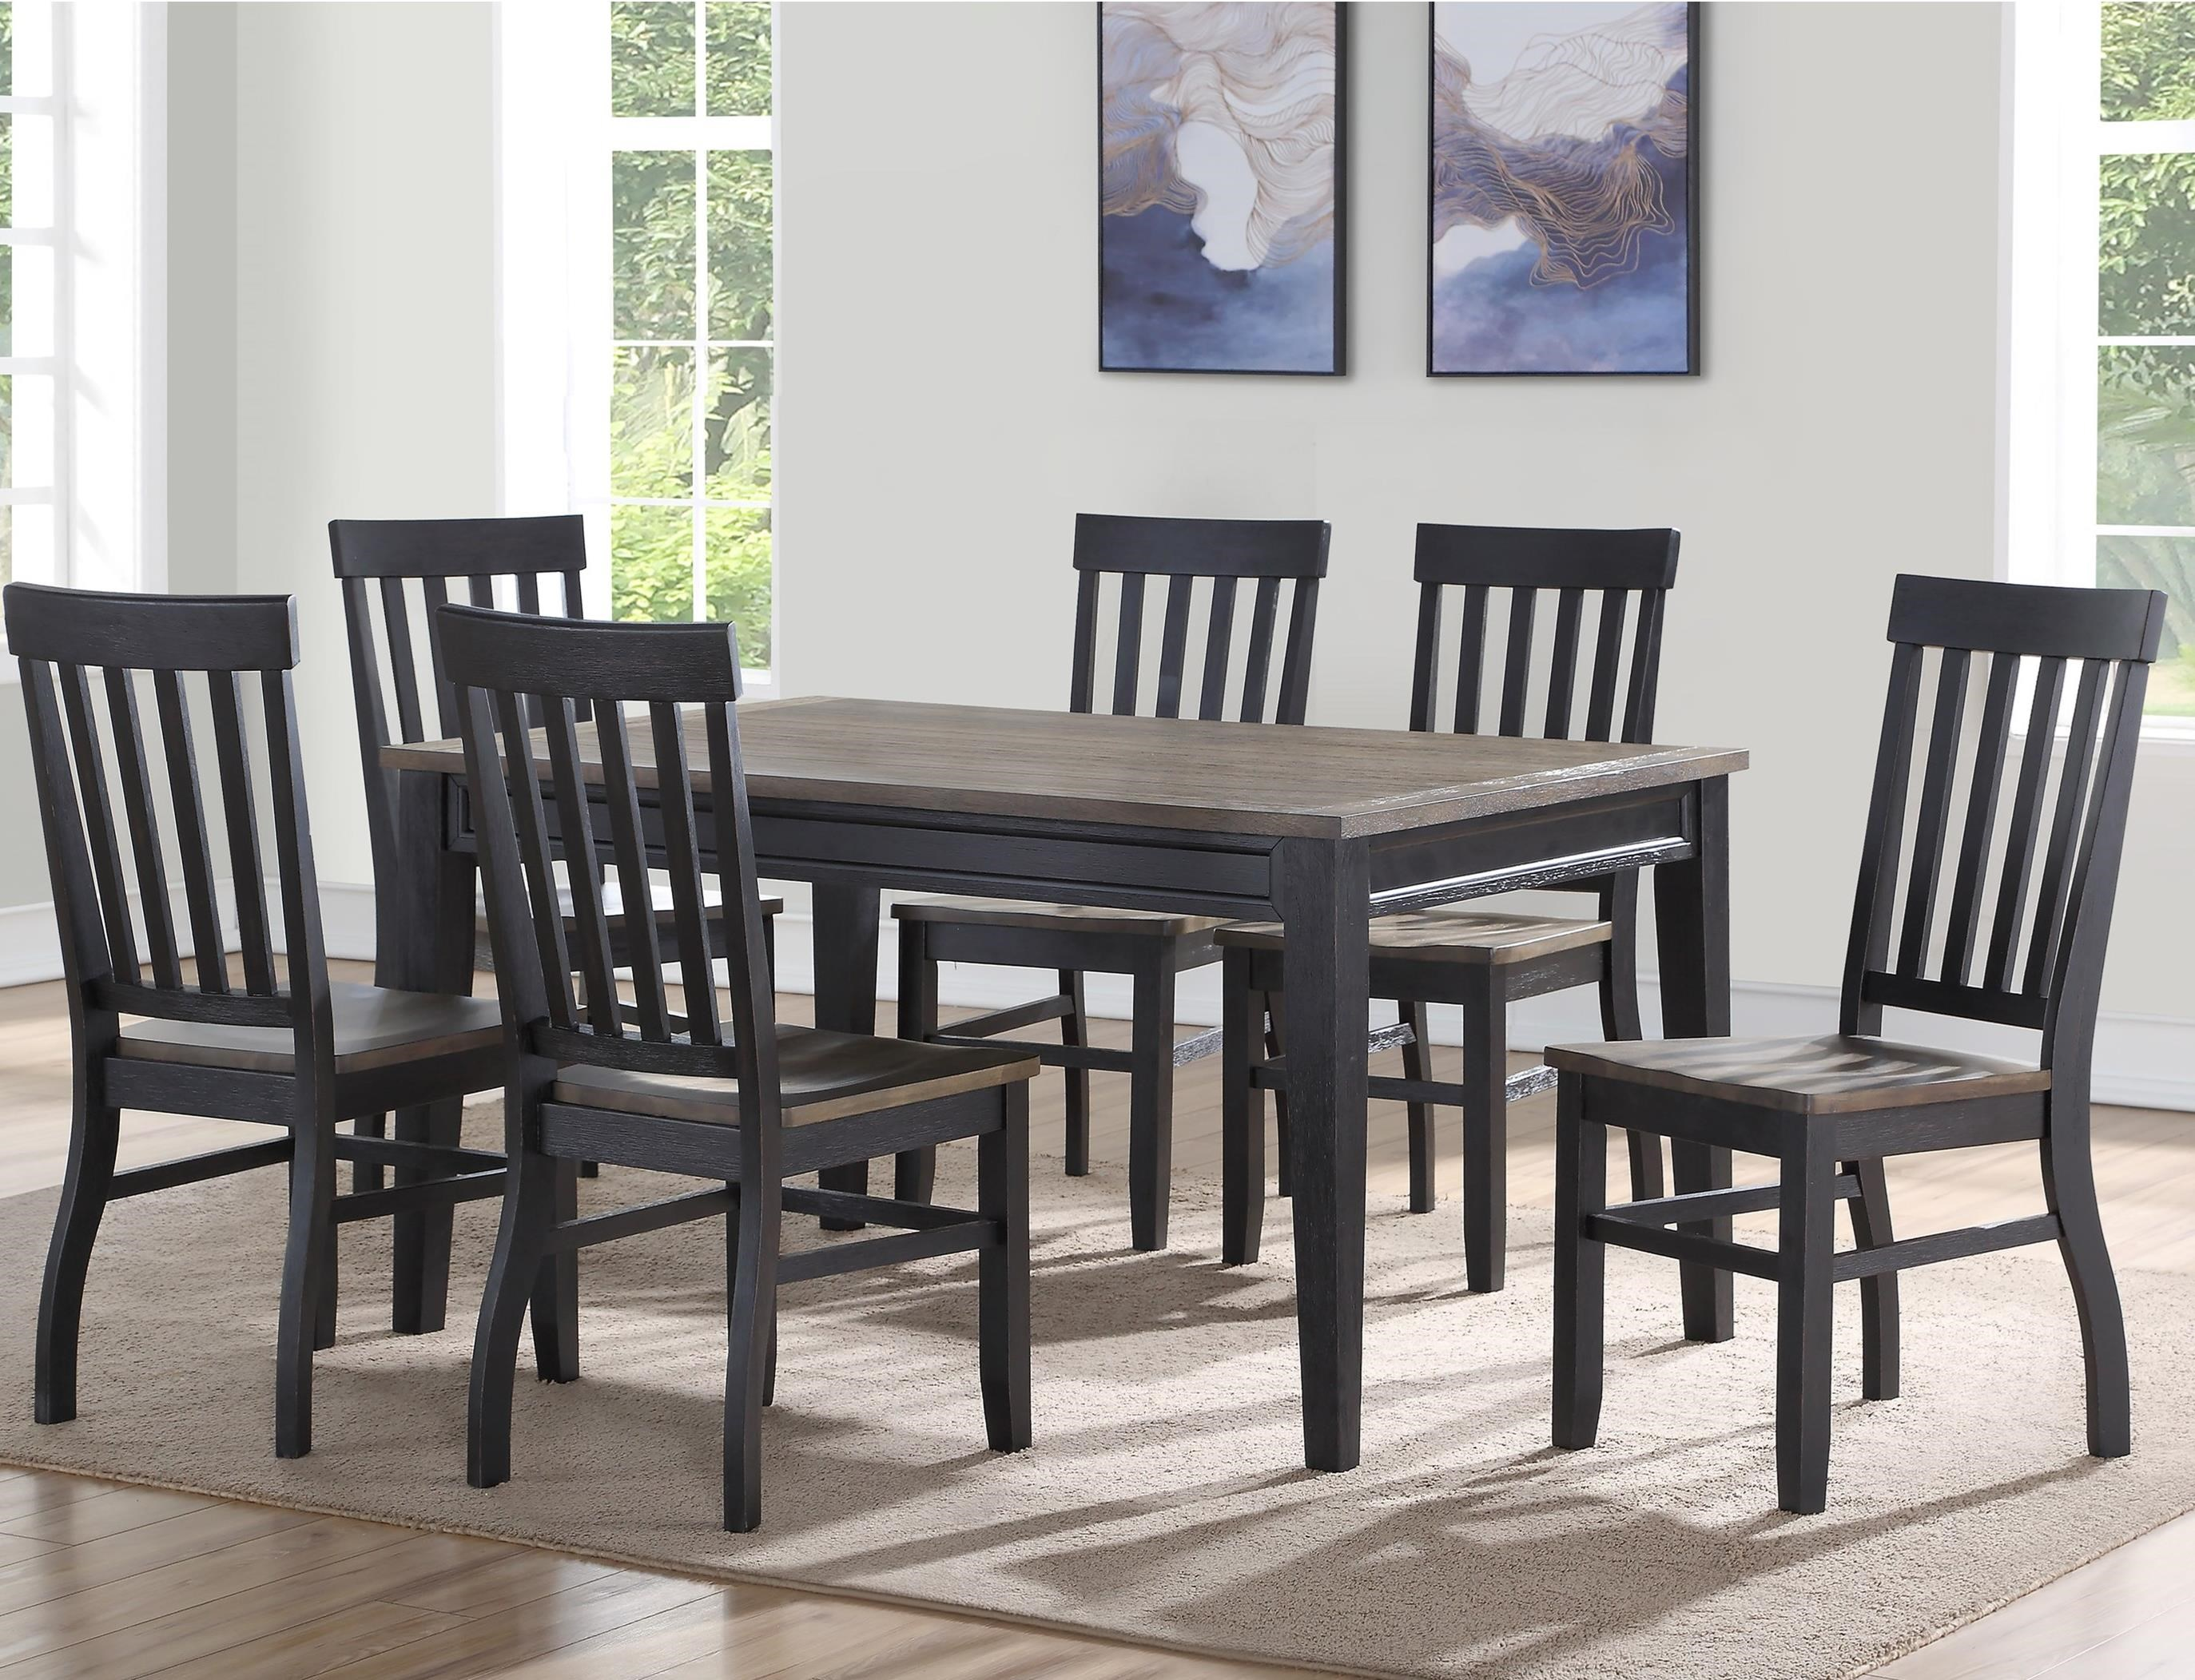 Raven 7 Pc Dining Set by Steve Silver at Northeast Factory Direct